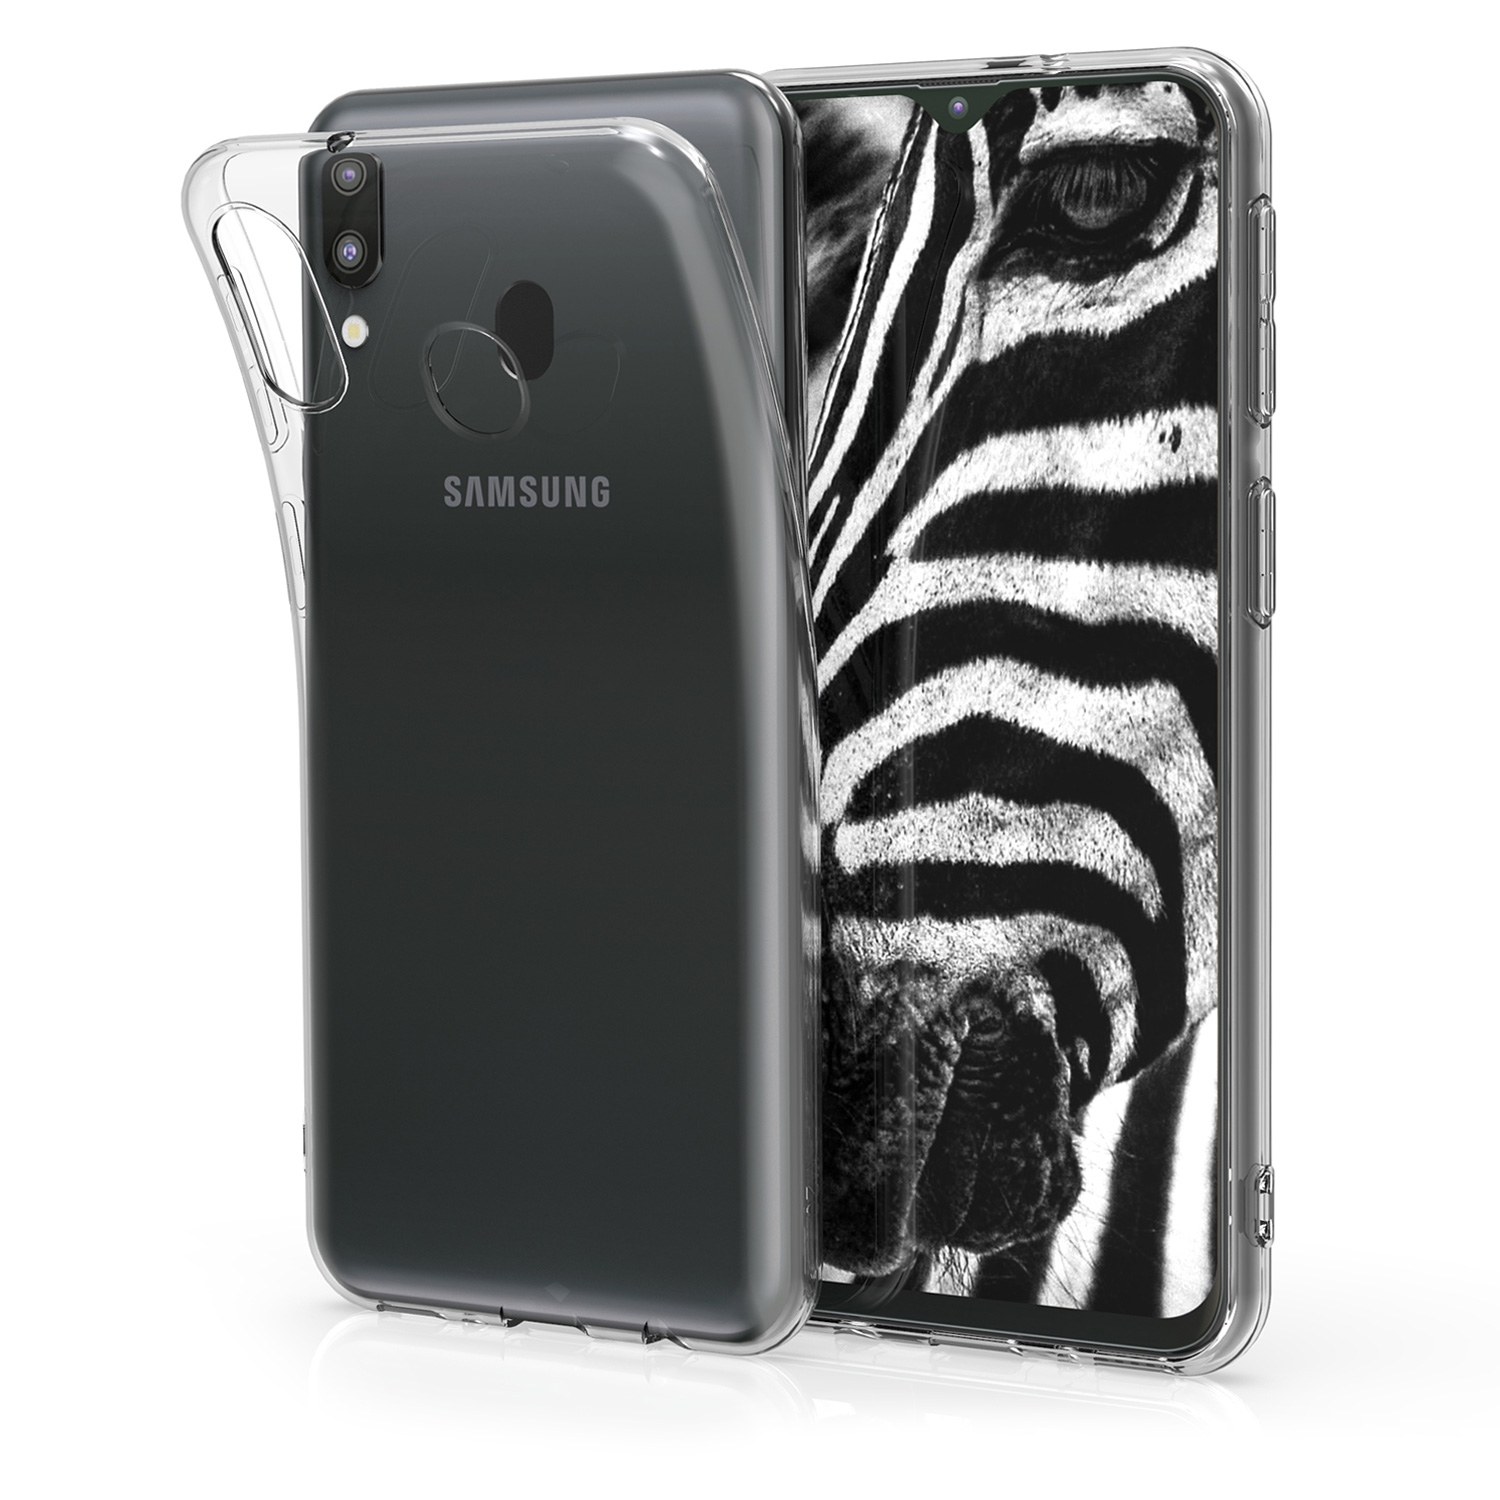 KW Θήκη Σιλικόνης Samsung Galaxy M20 (2019) - Transparent (48308.03)